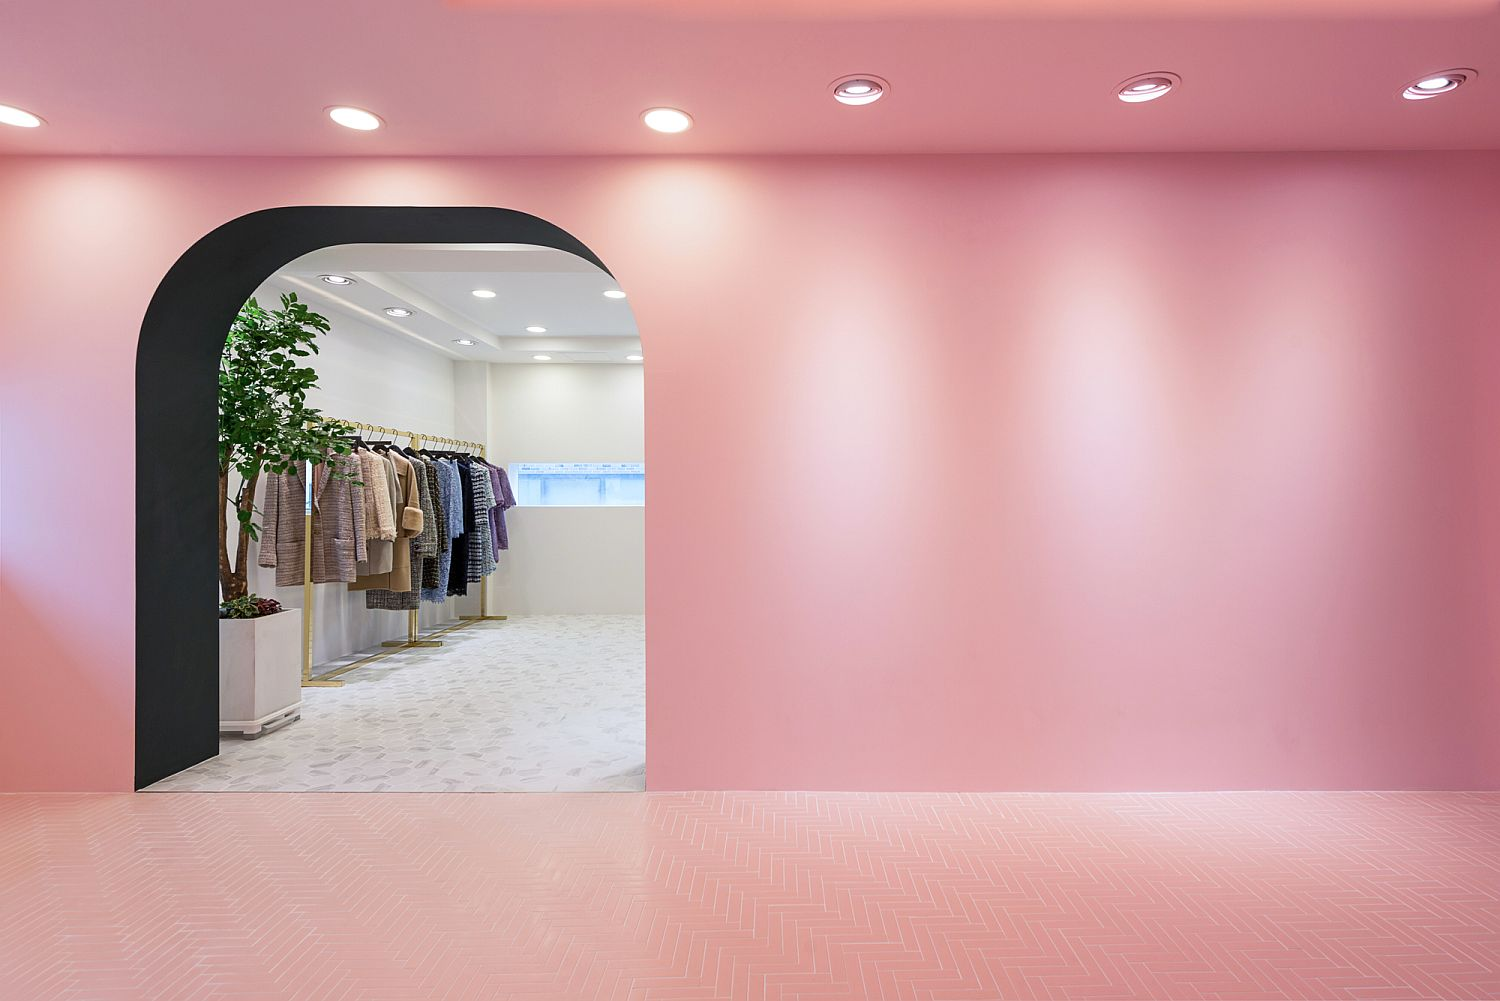 Lighting adds to the ambiance of the all pink entry room